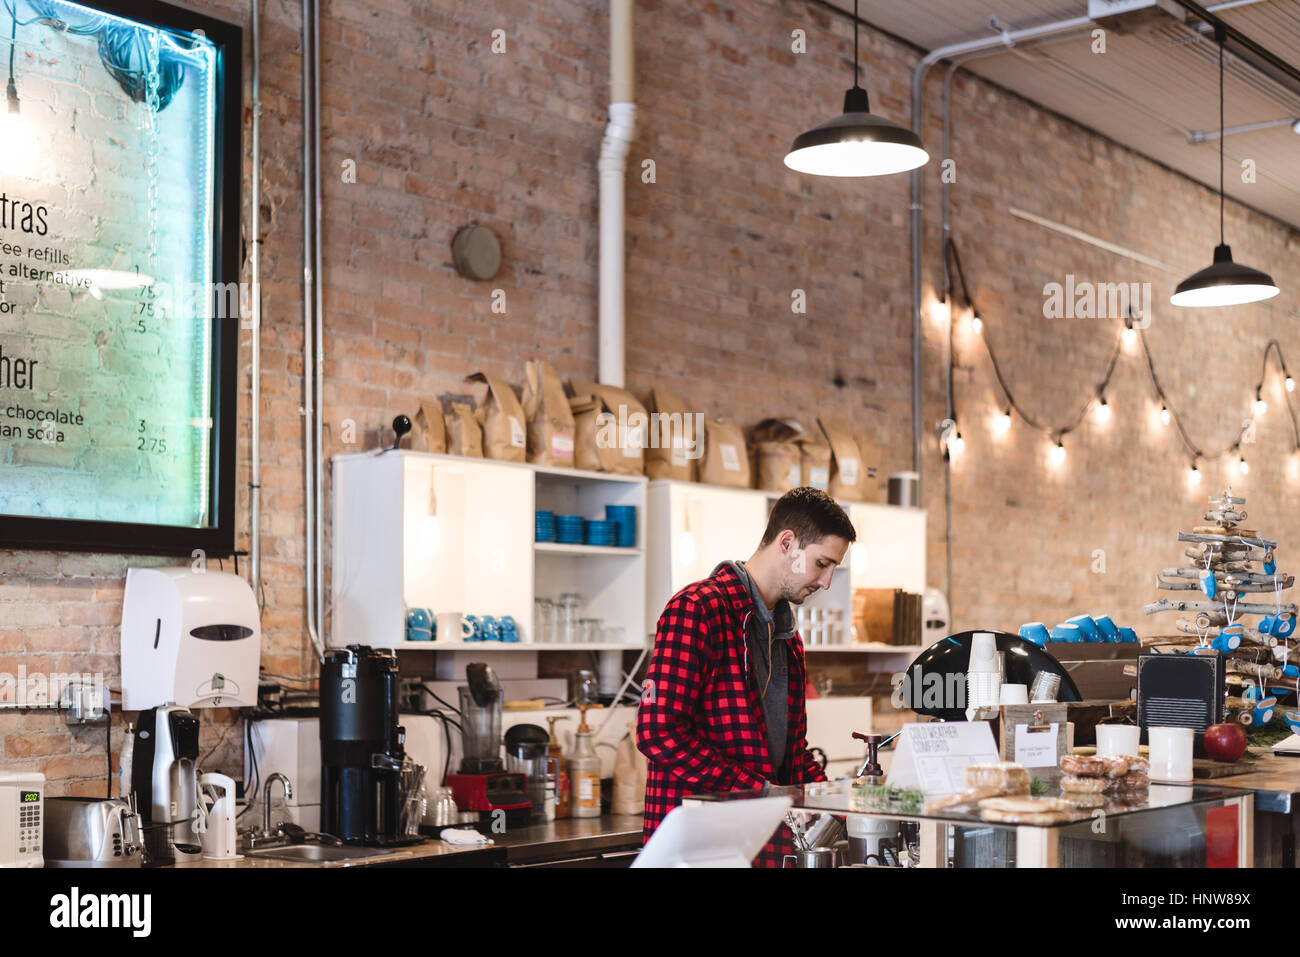 Barista preparing coffee in cafe - Stock Image